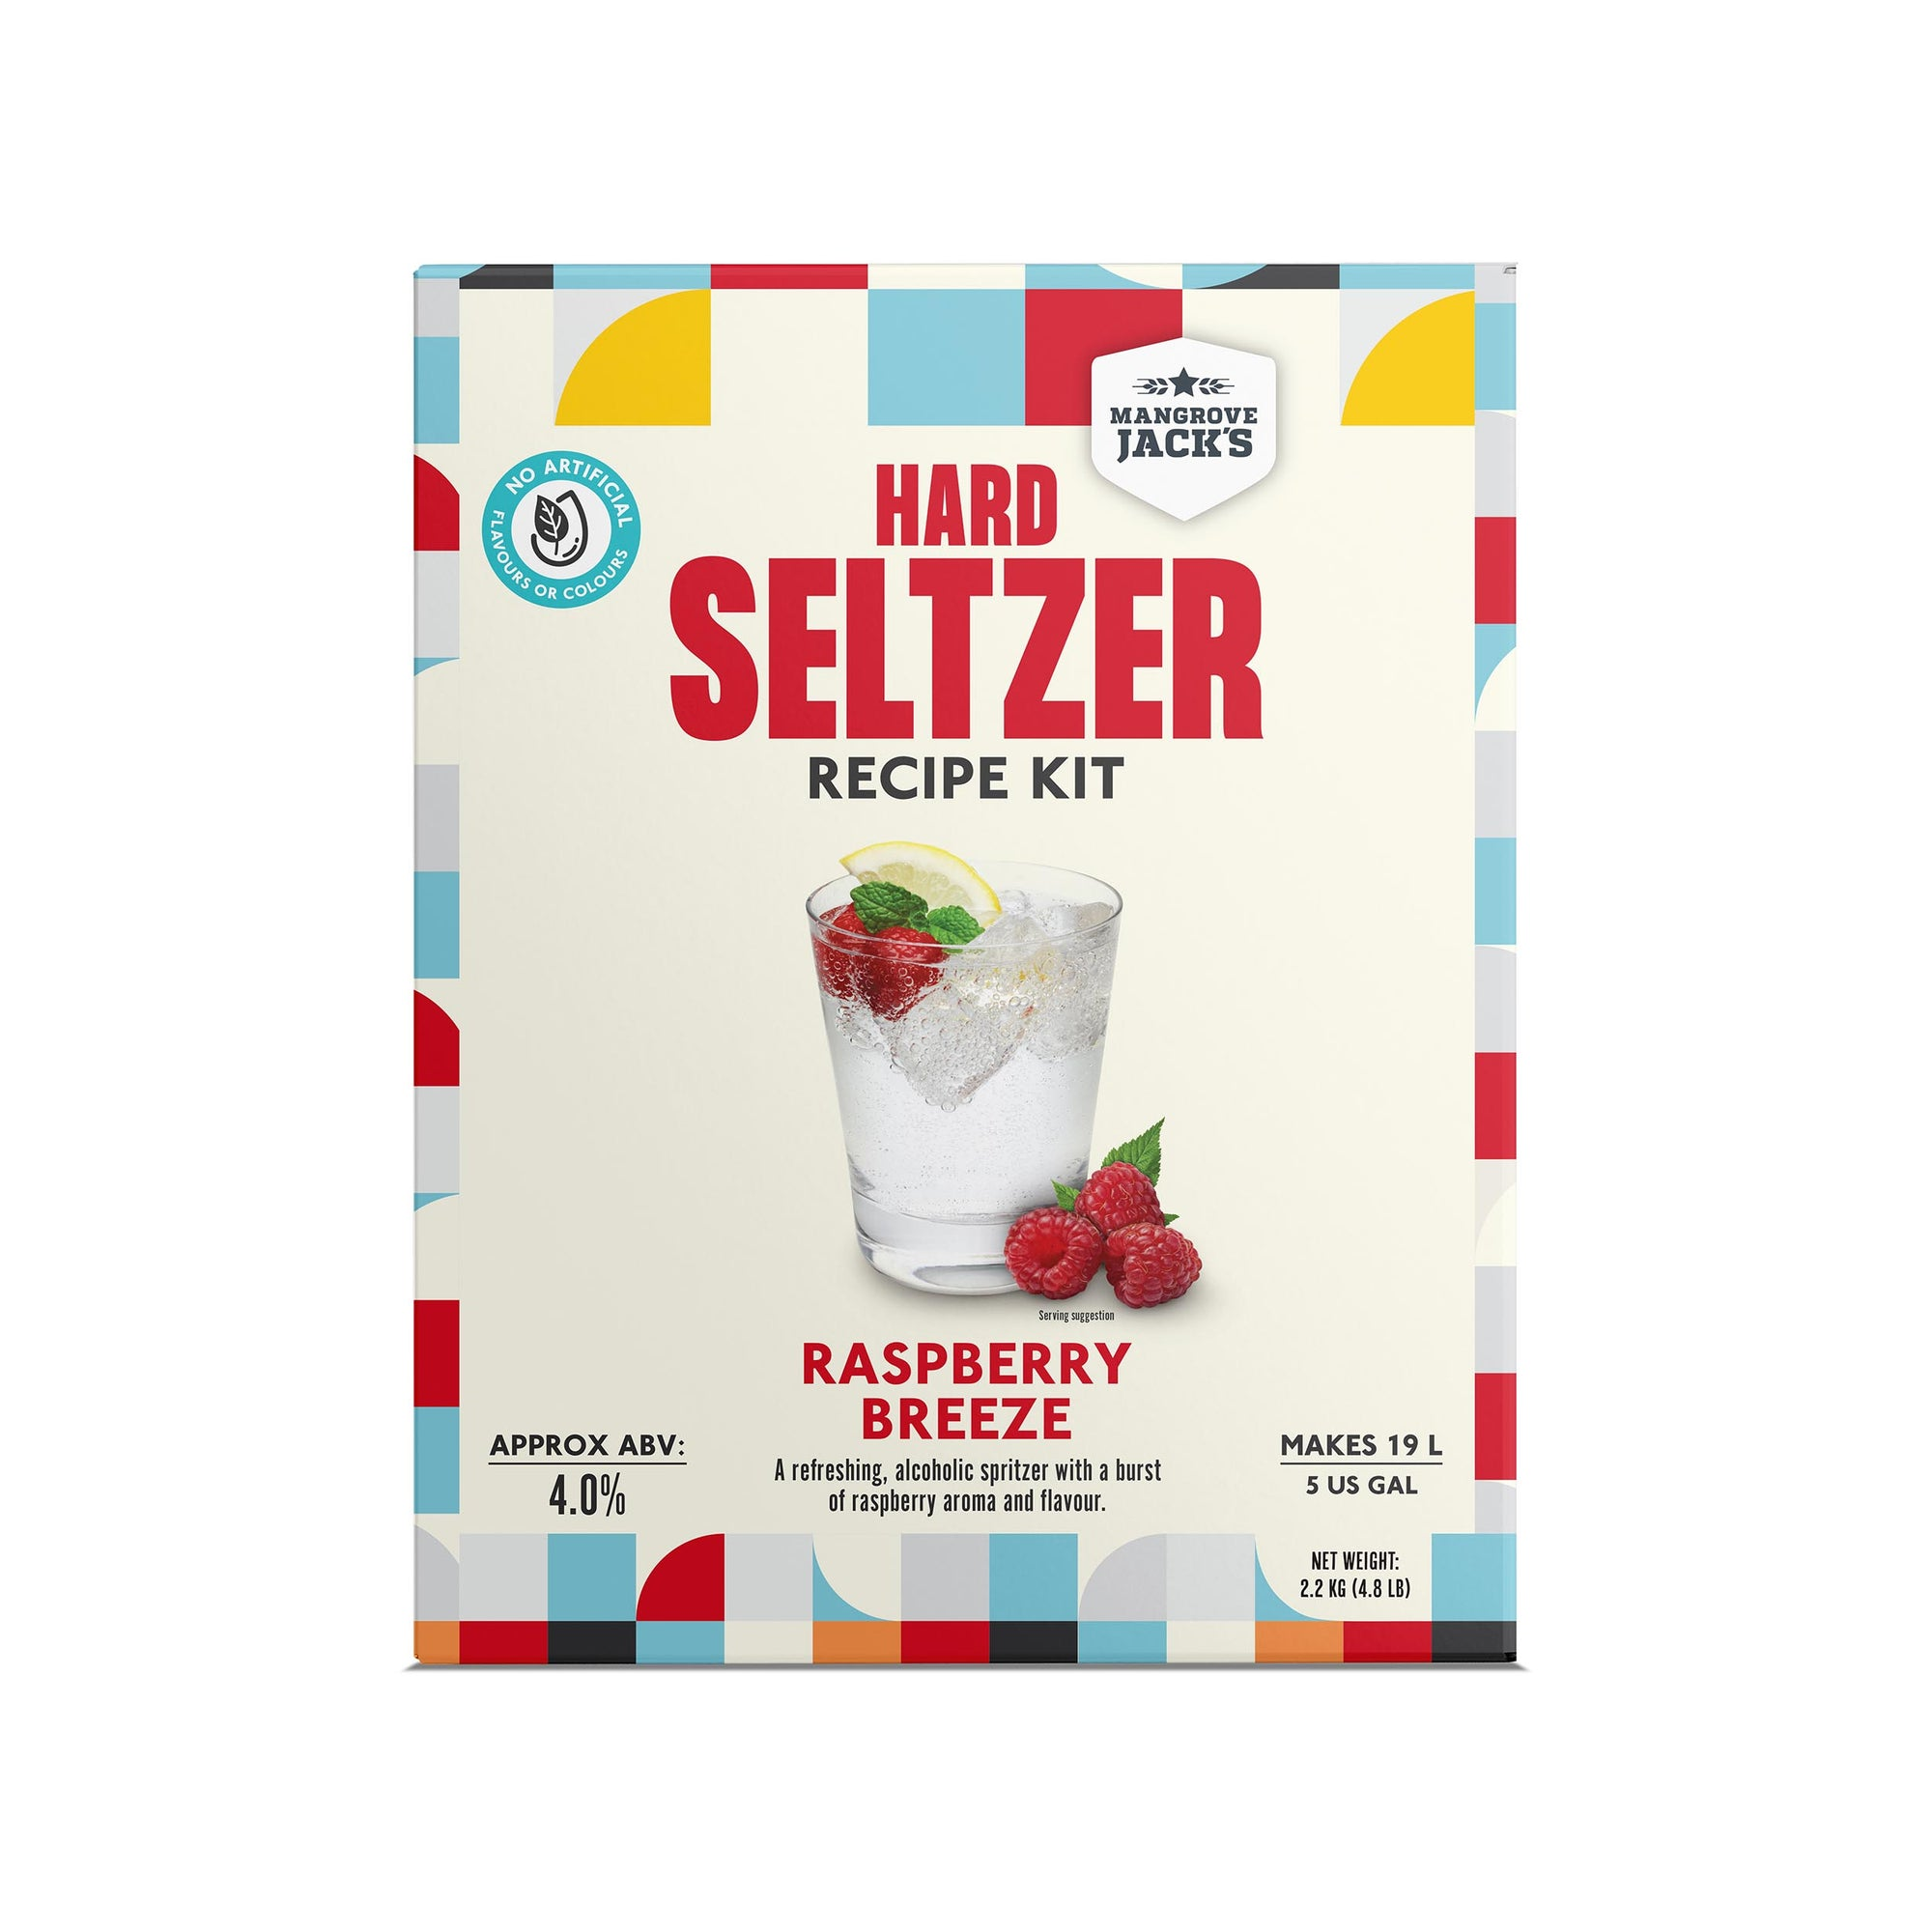 Hard Seltzer Recipe Kit - Raspberry Breeze